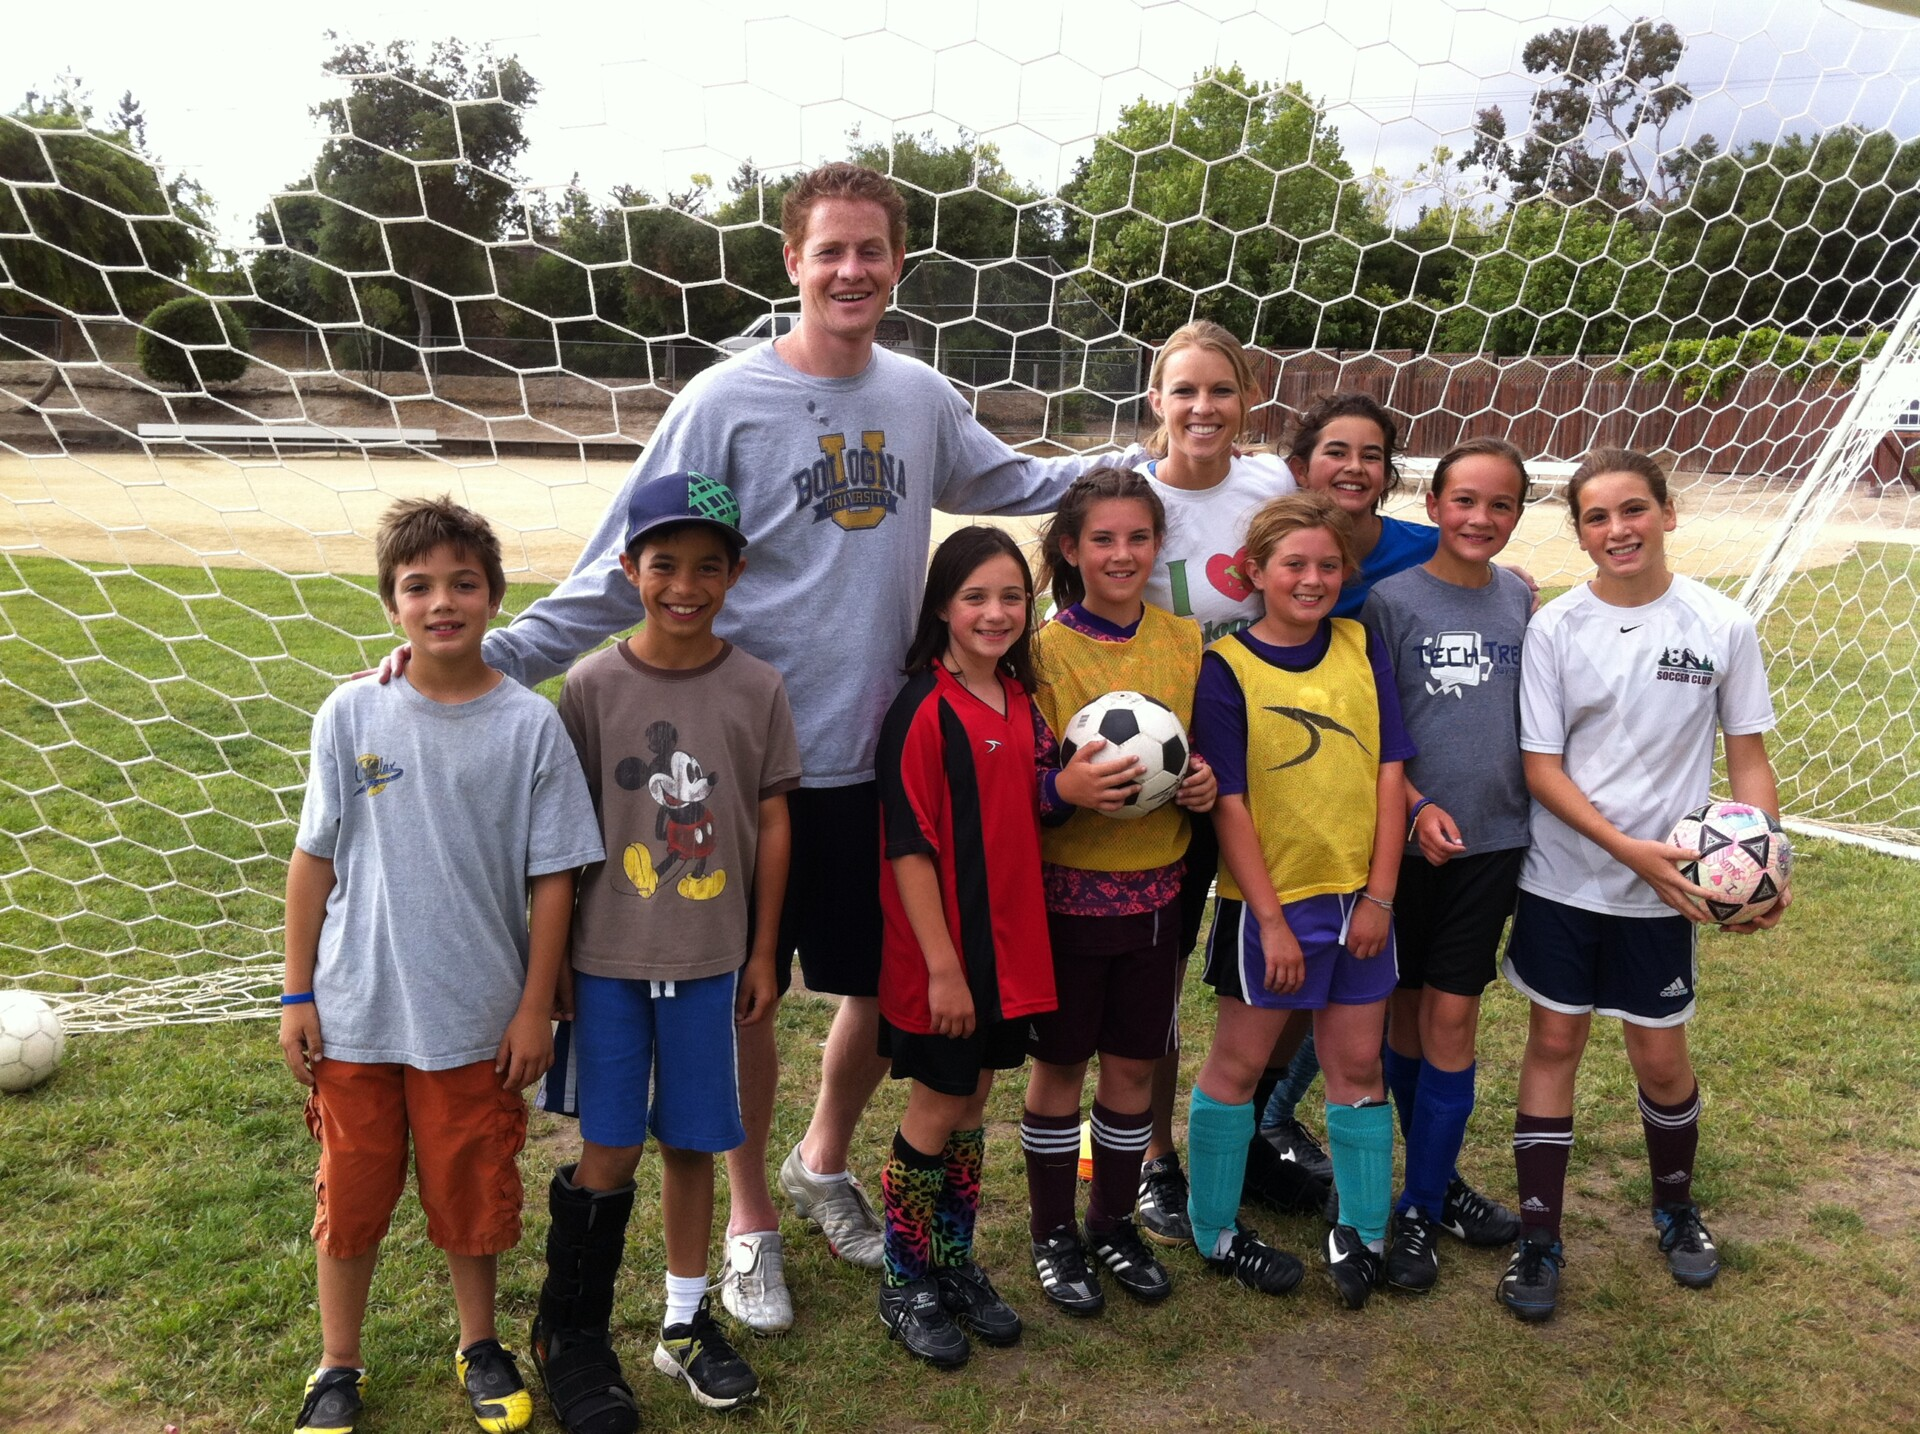 Baymonte 4th Grade Teacher Hosts Soccer Clinic to Raise Money for Teacher Grants